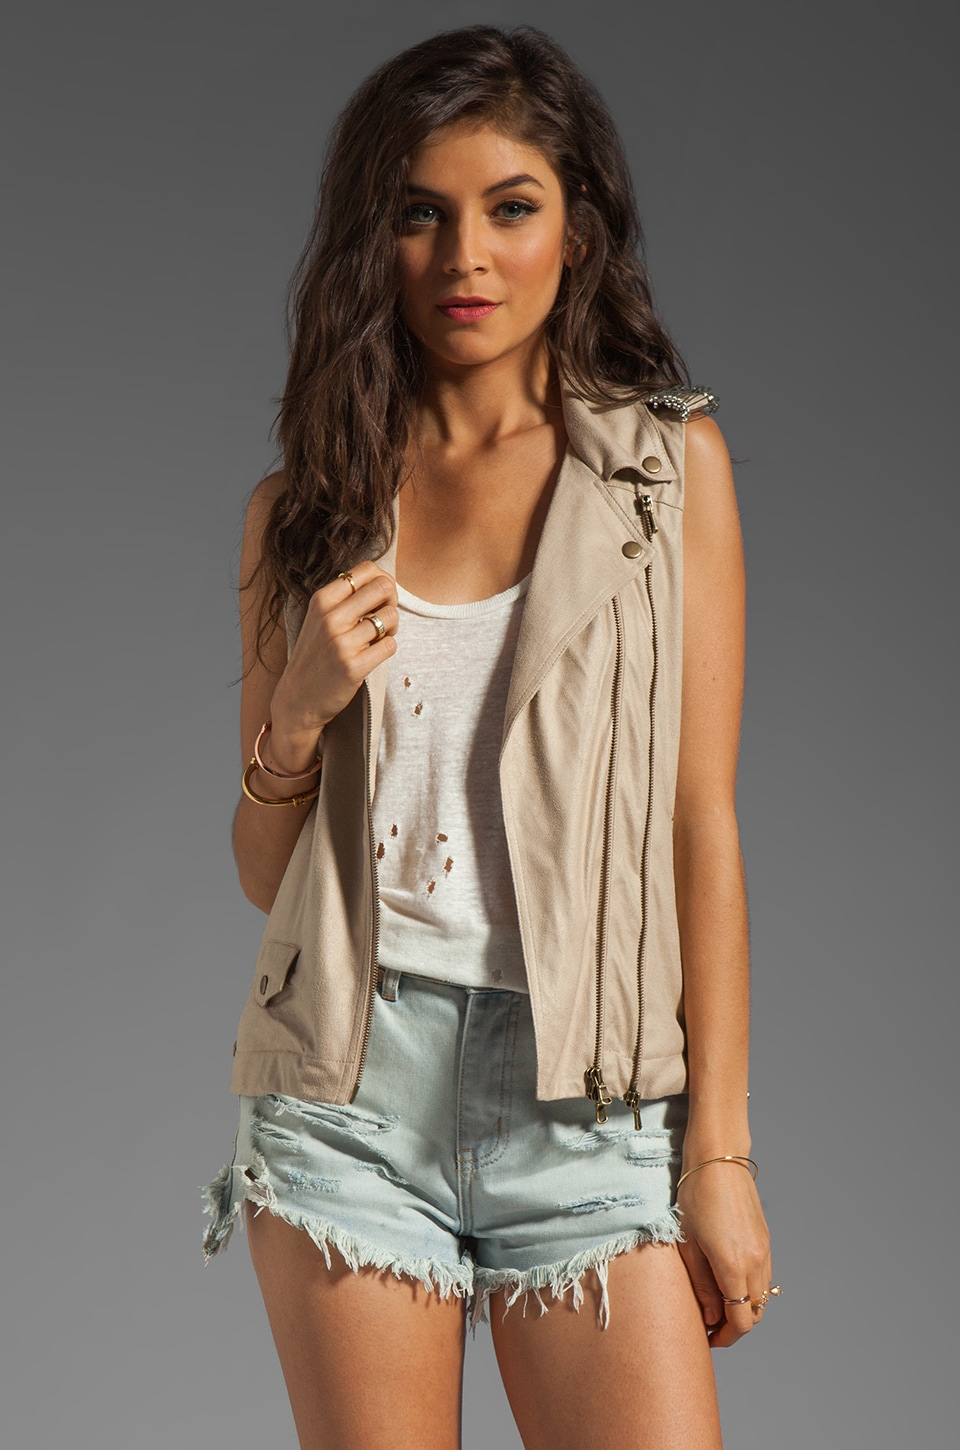 Capulet Motorcycle Vest in Cream